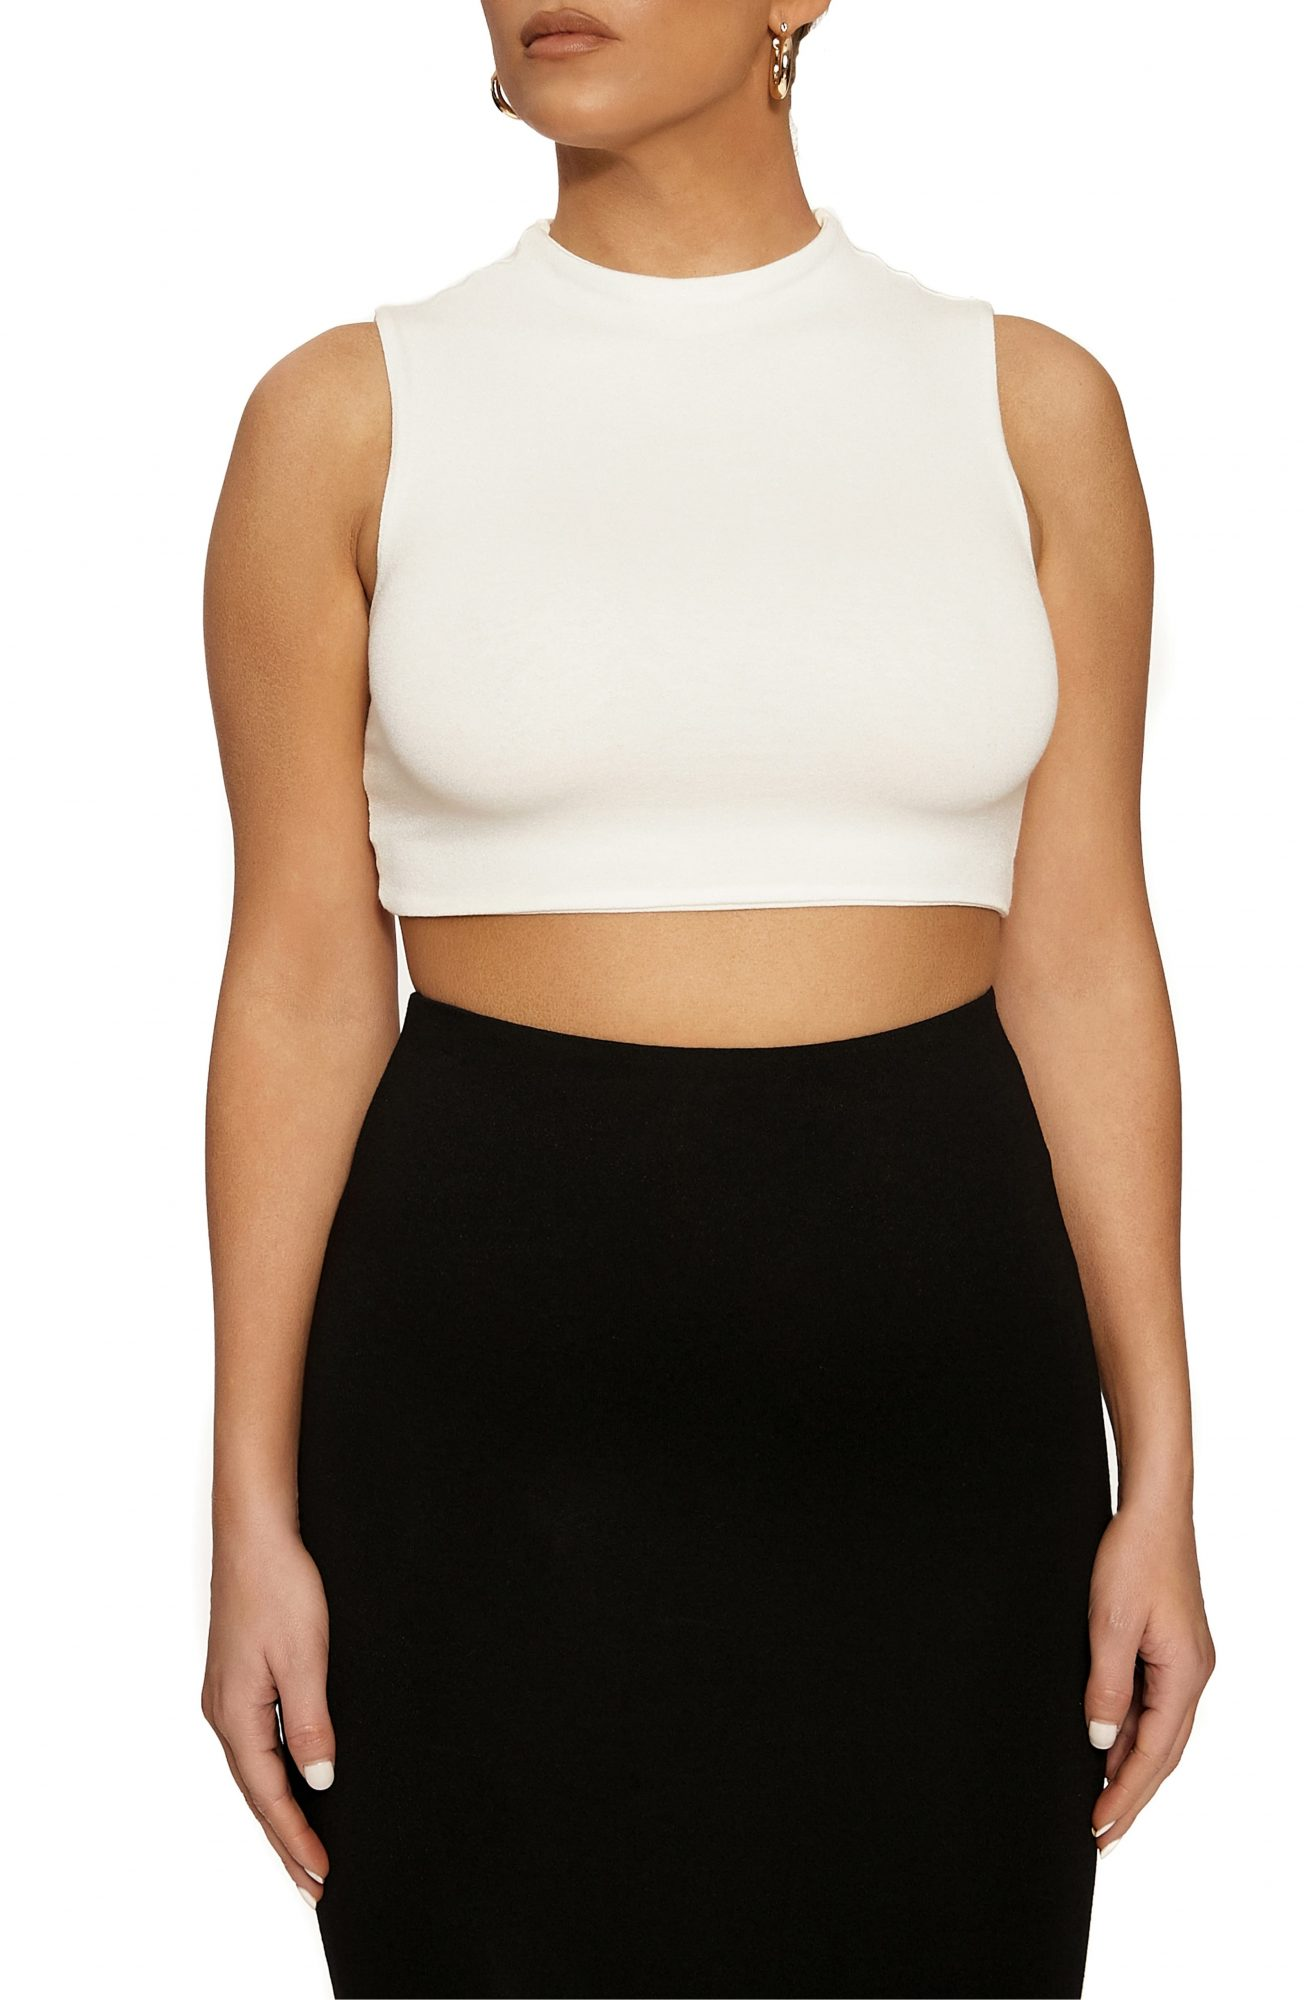 Naked Wardrobe Sleeveless Crop Top